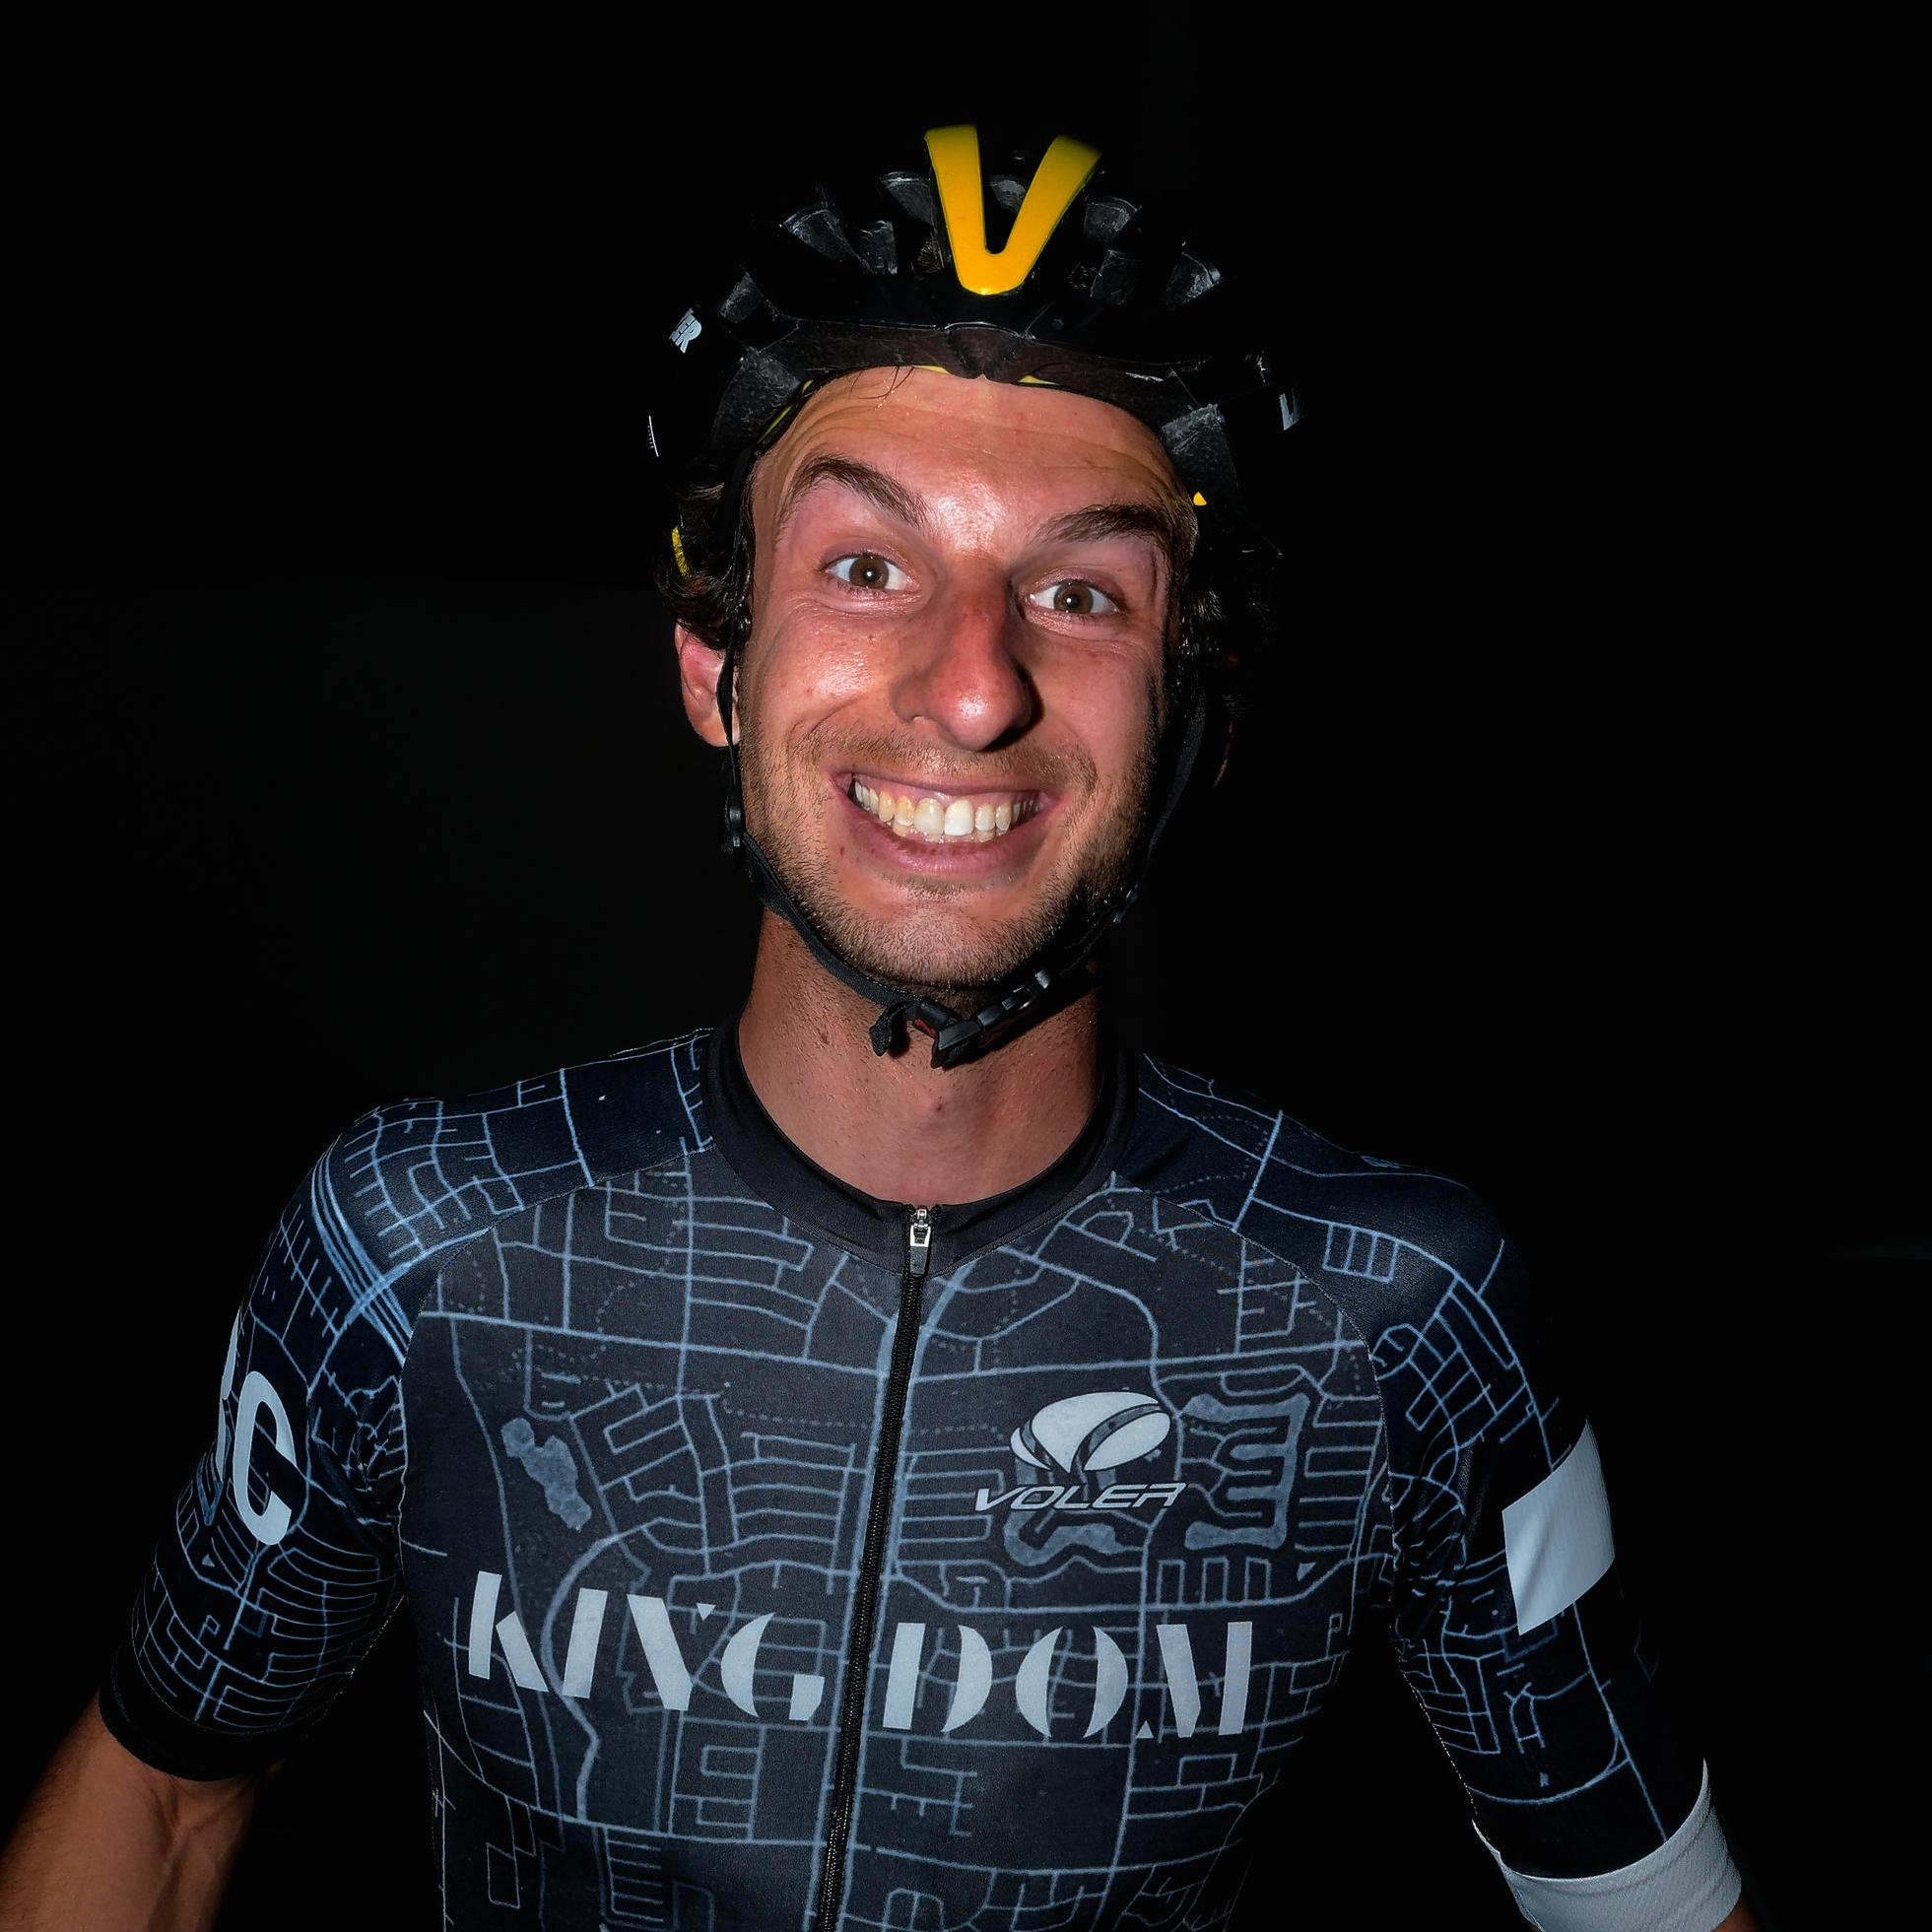 Jace Kuyper - 27 years oldNext College Student AthleteCat. 2 Road Cyclist for Bike Accident AttorneysFrom Phoenix, AZ.